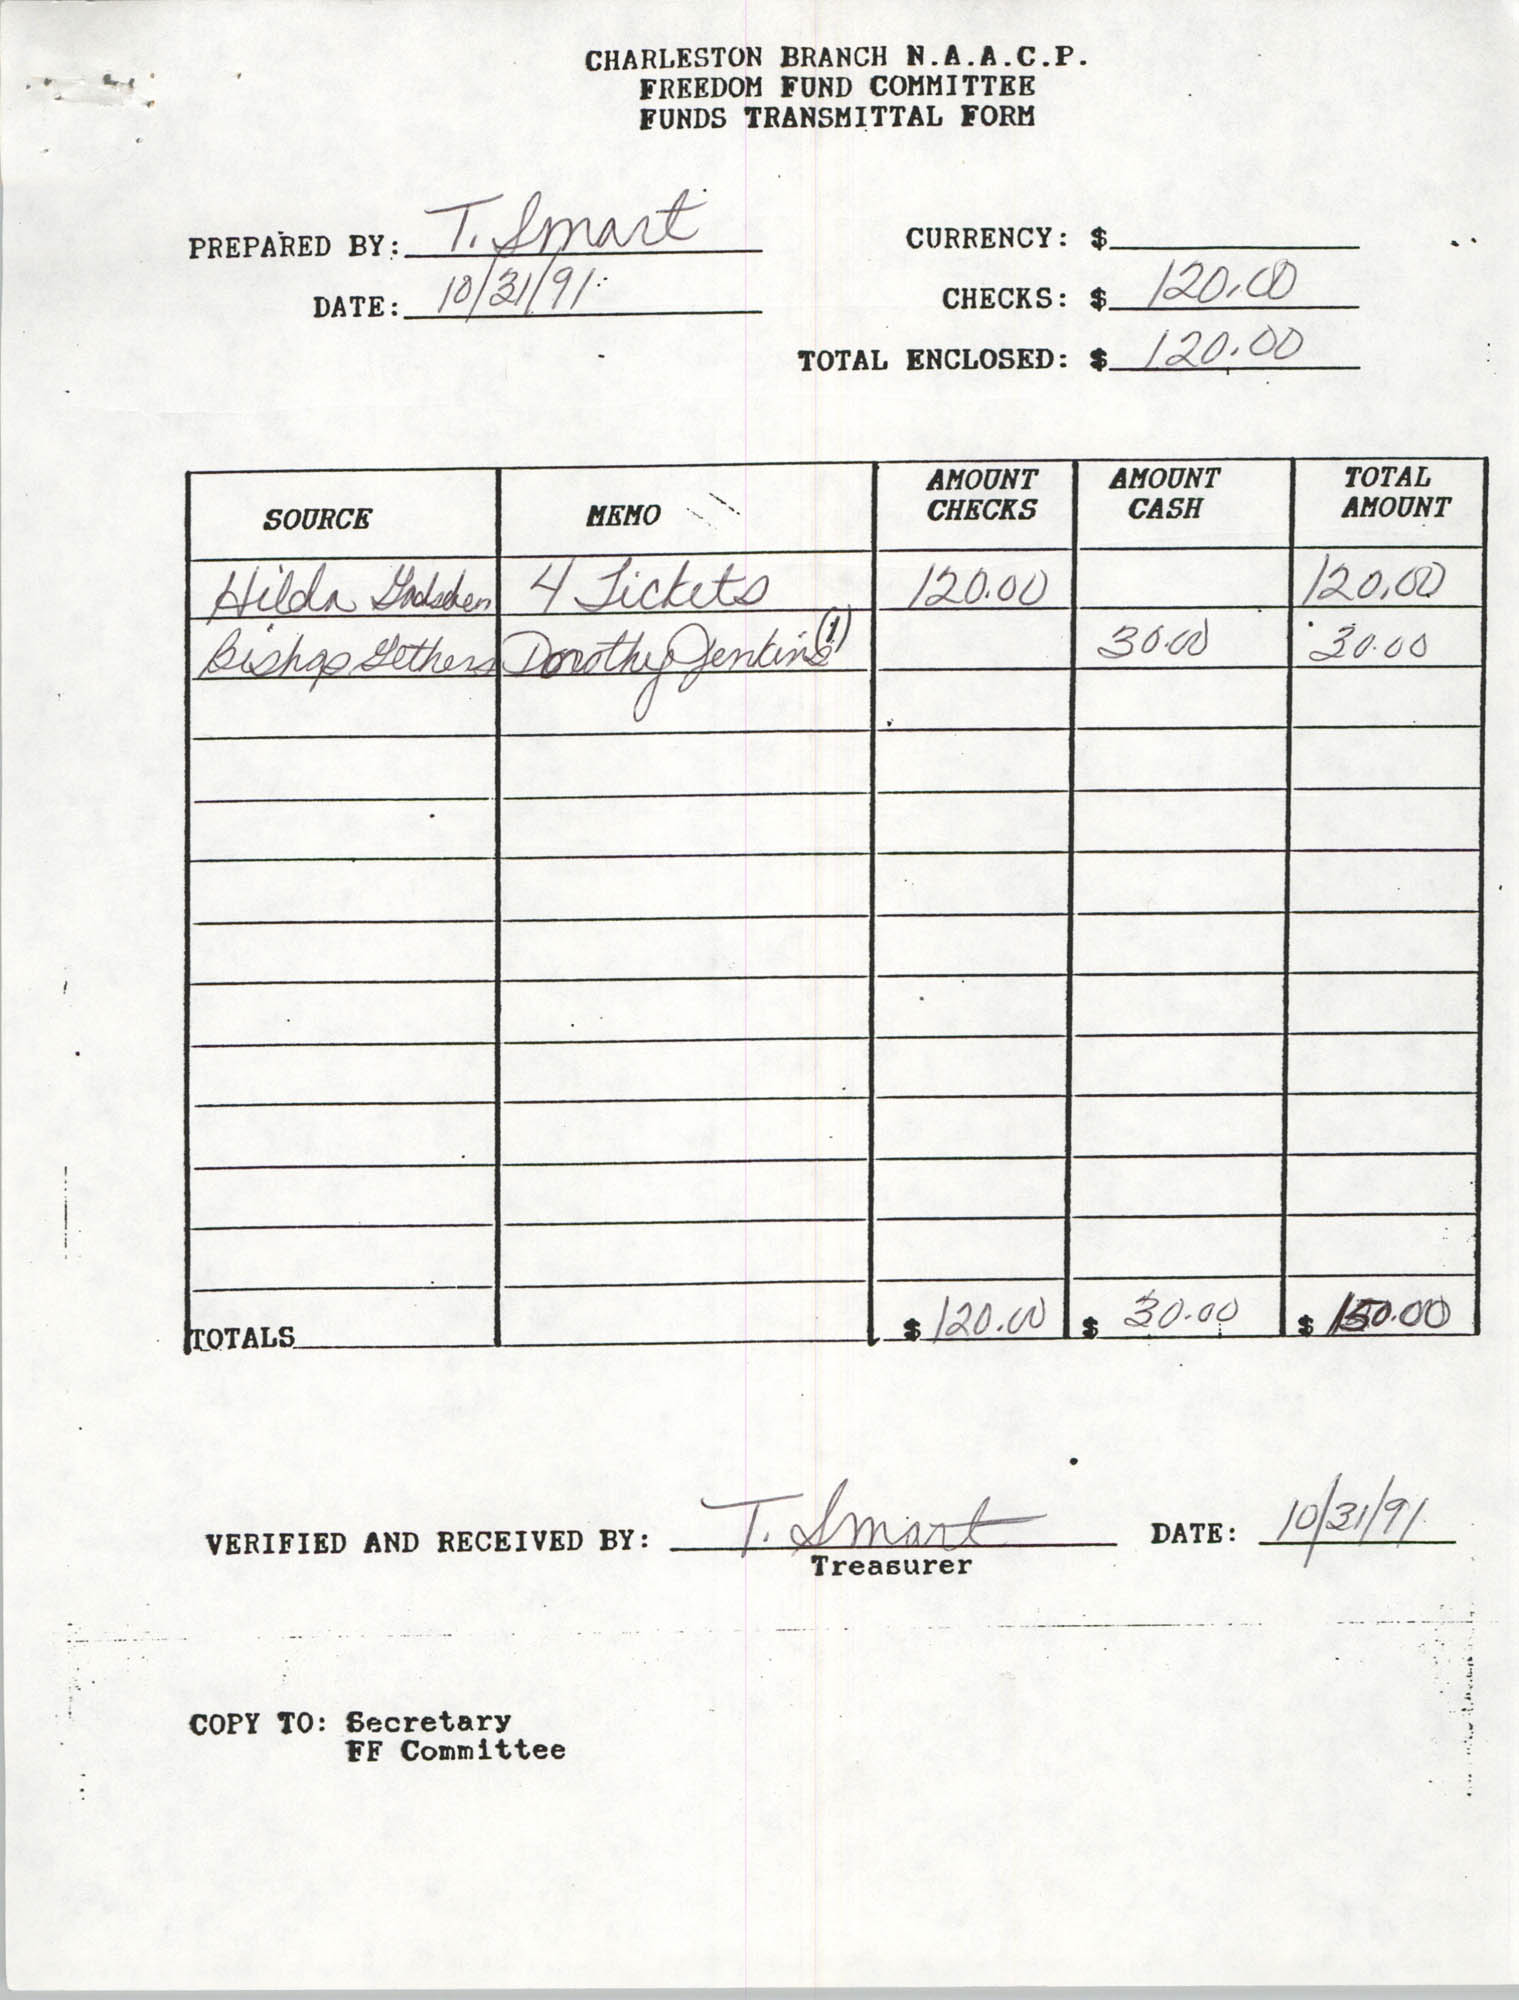 Charleston Branch of the NAACP Funds Transmittal Forms, November 1991, Page 1